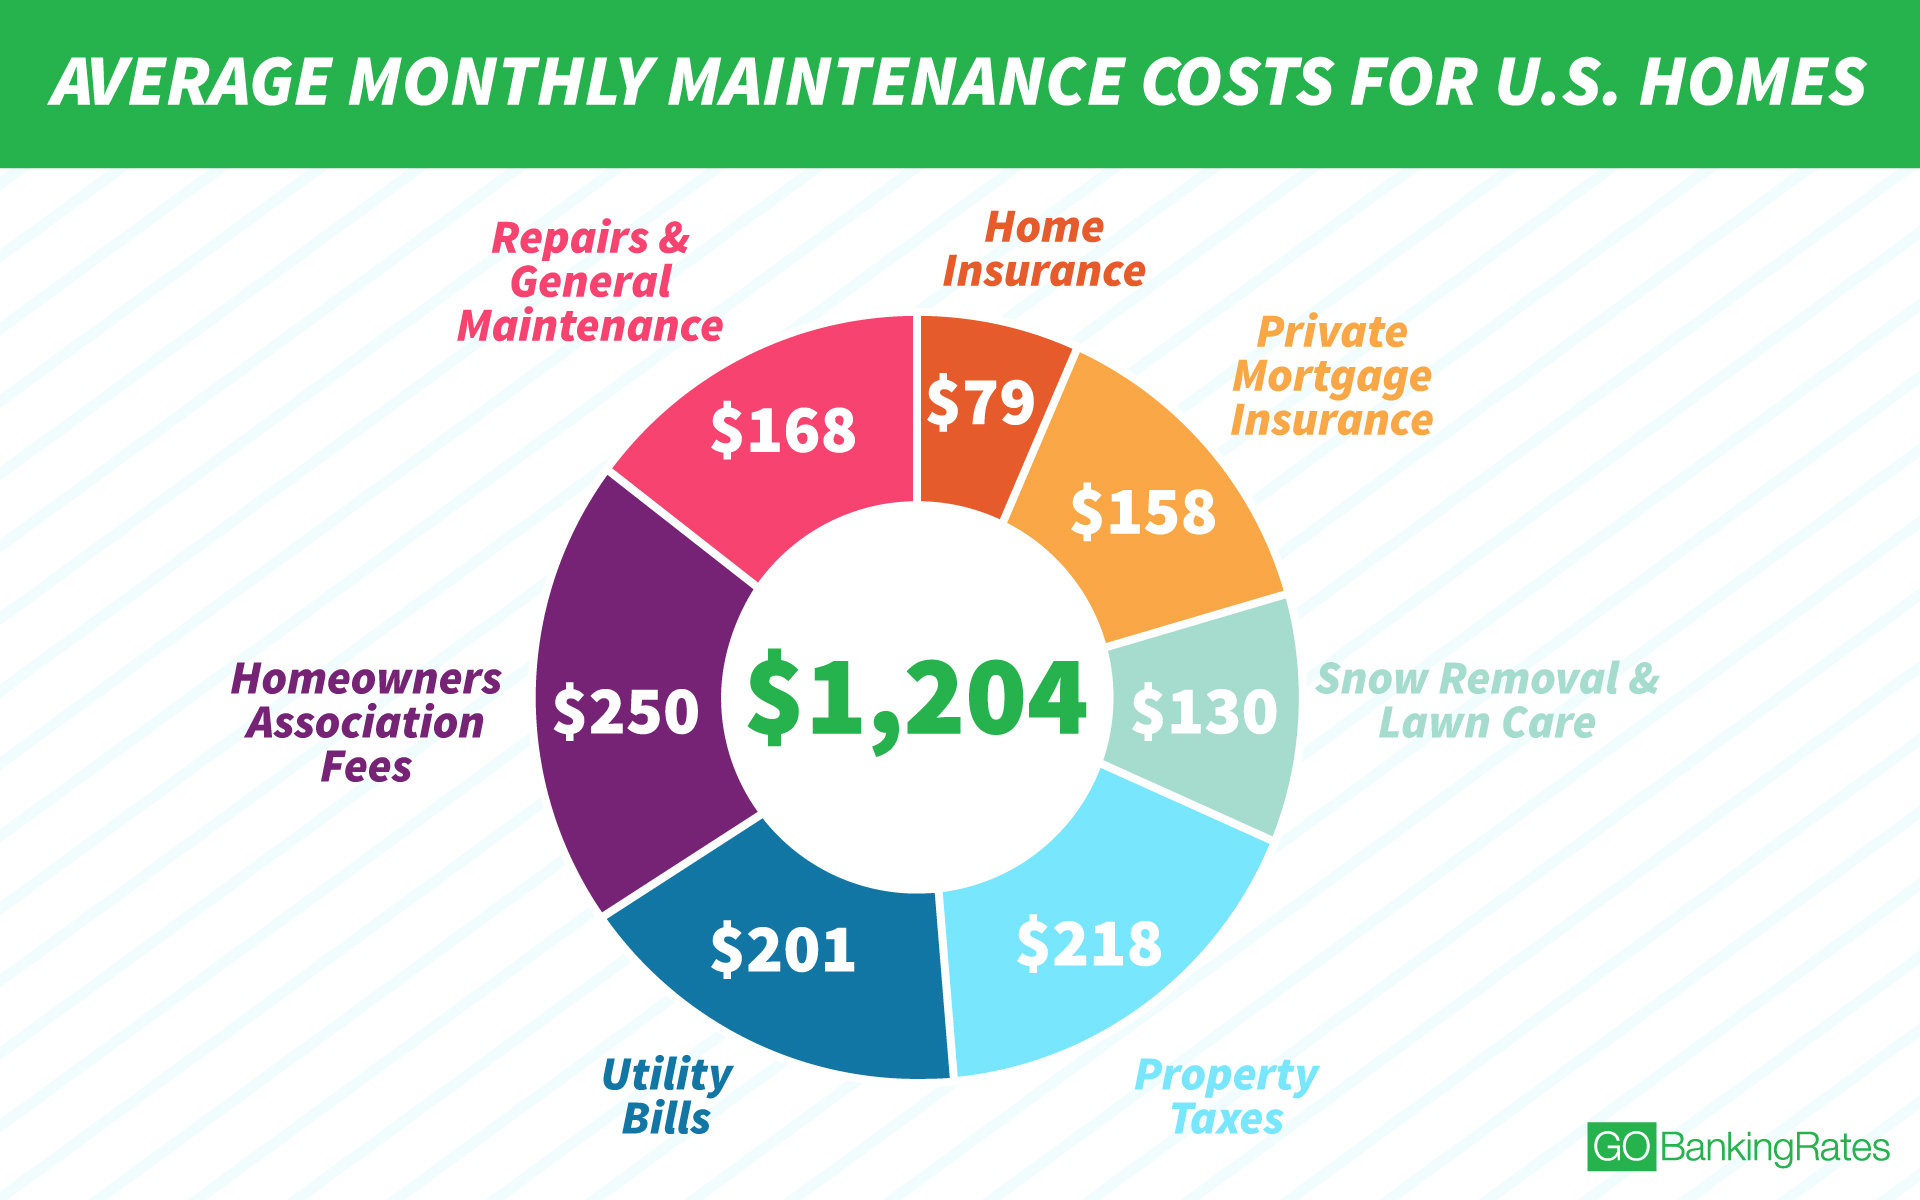 here's why it costs $1,204 a month to maintain the average home